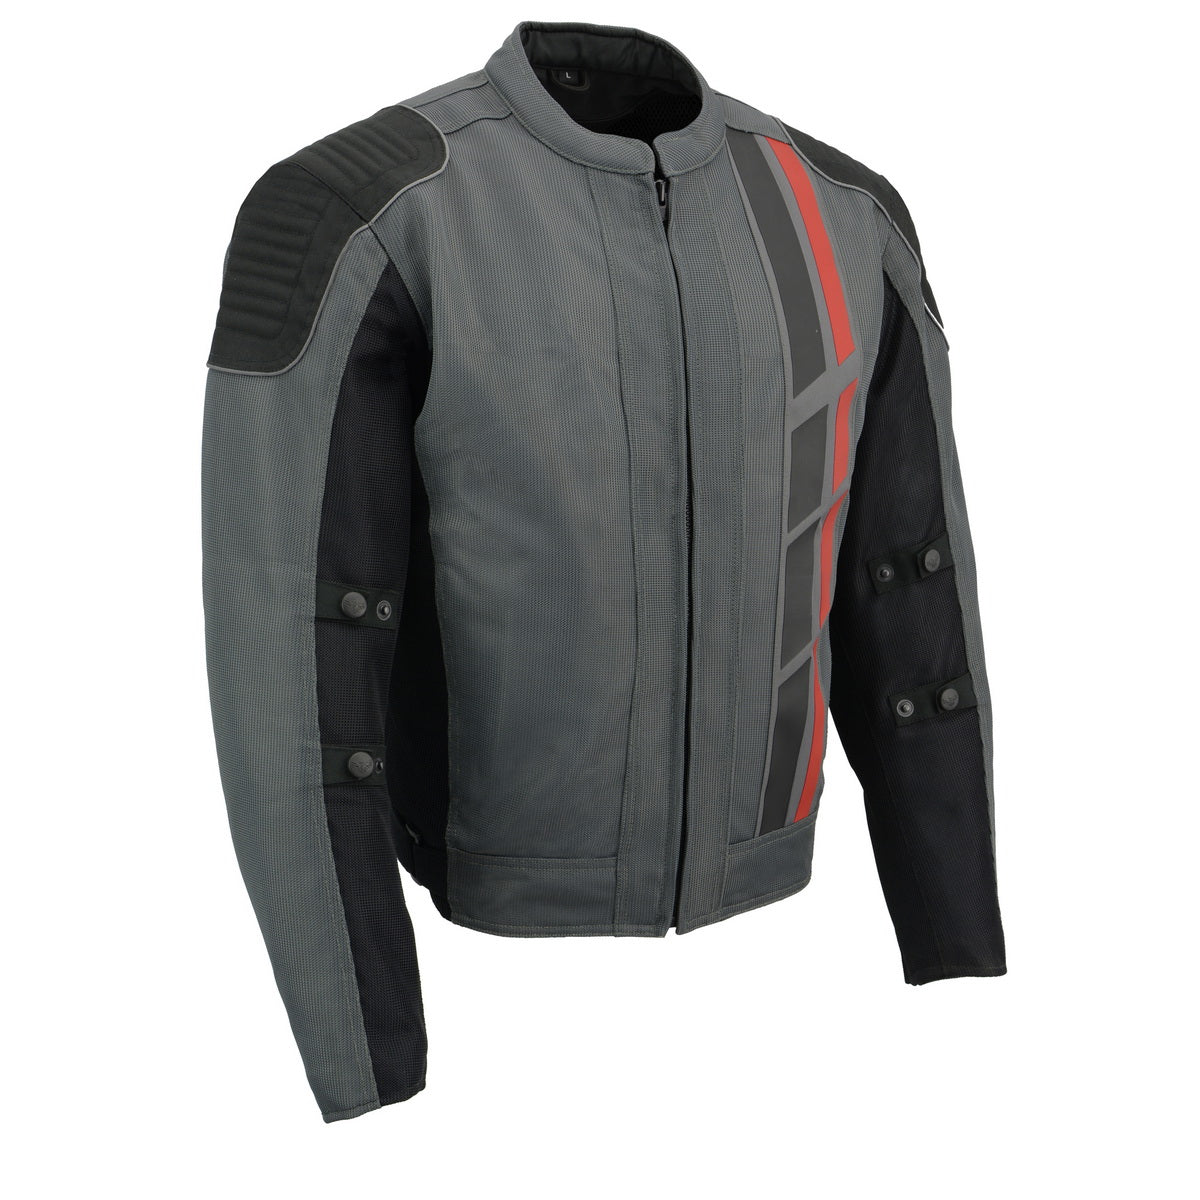 Milwaukee Leather MPM1752 Men's Black and Grey Mesh Armored Racing